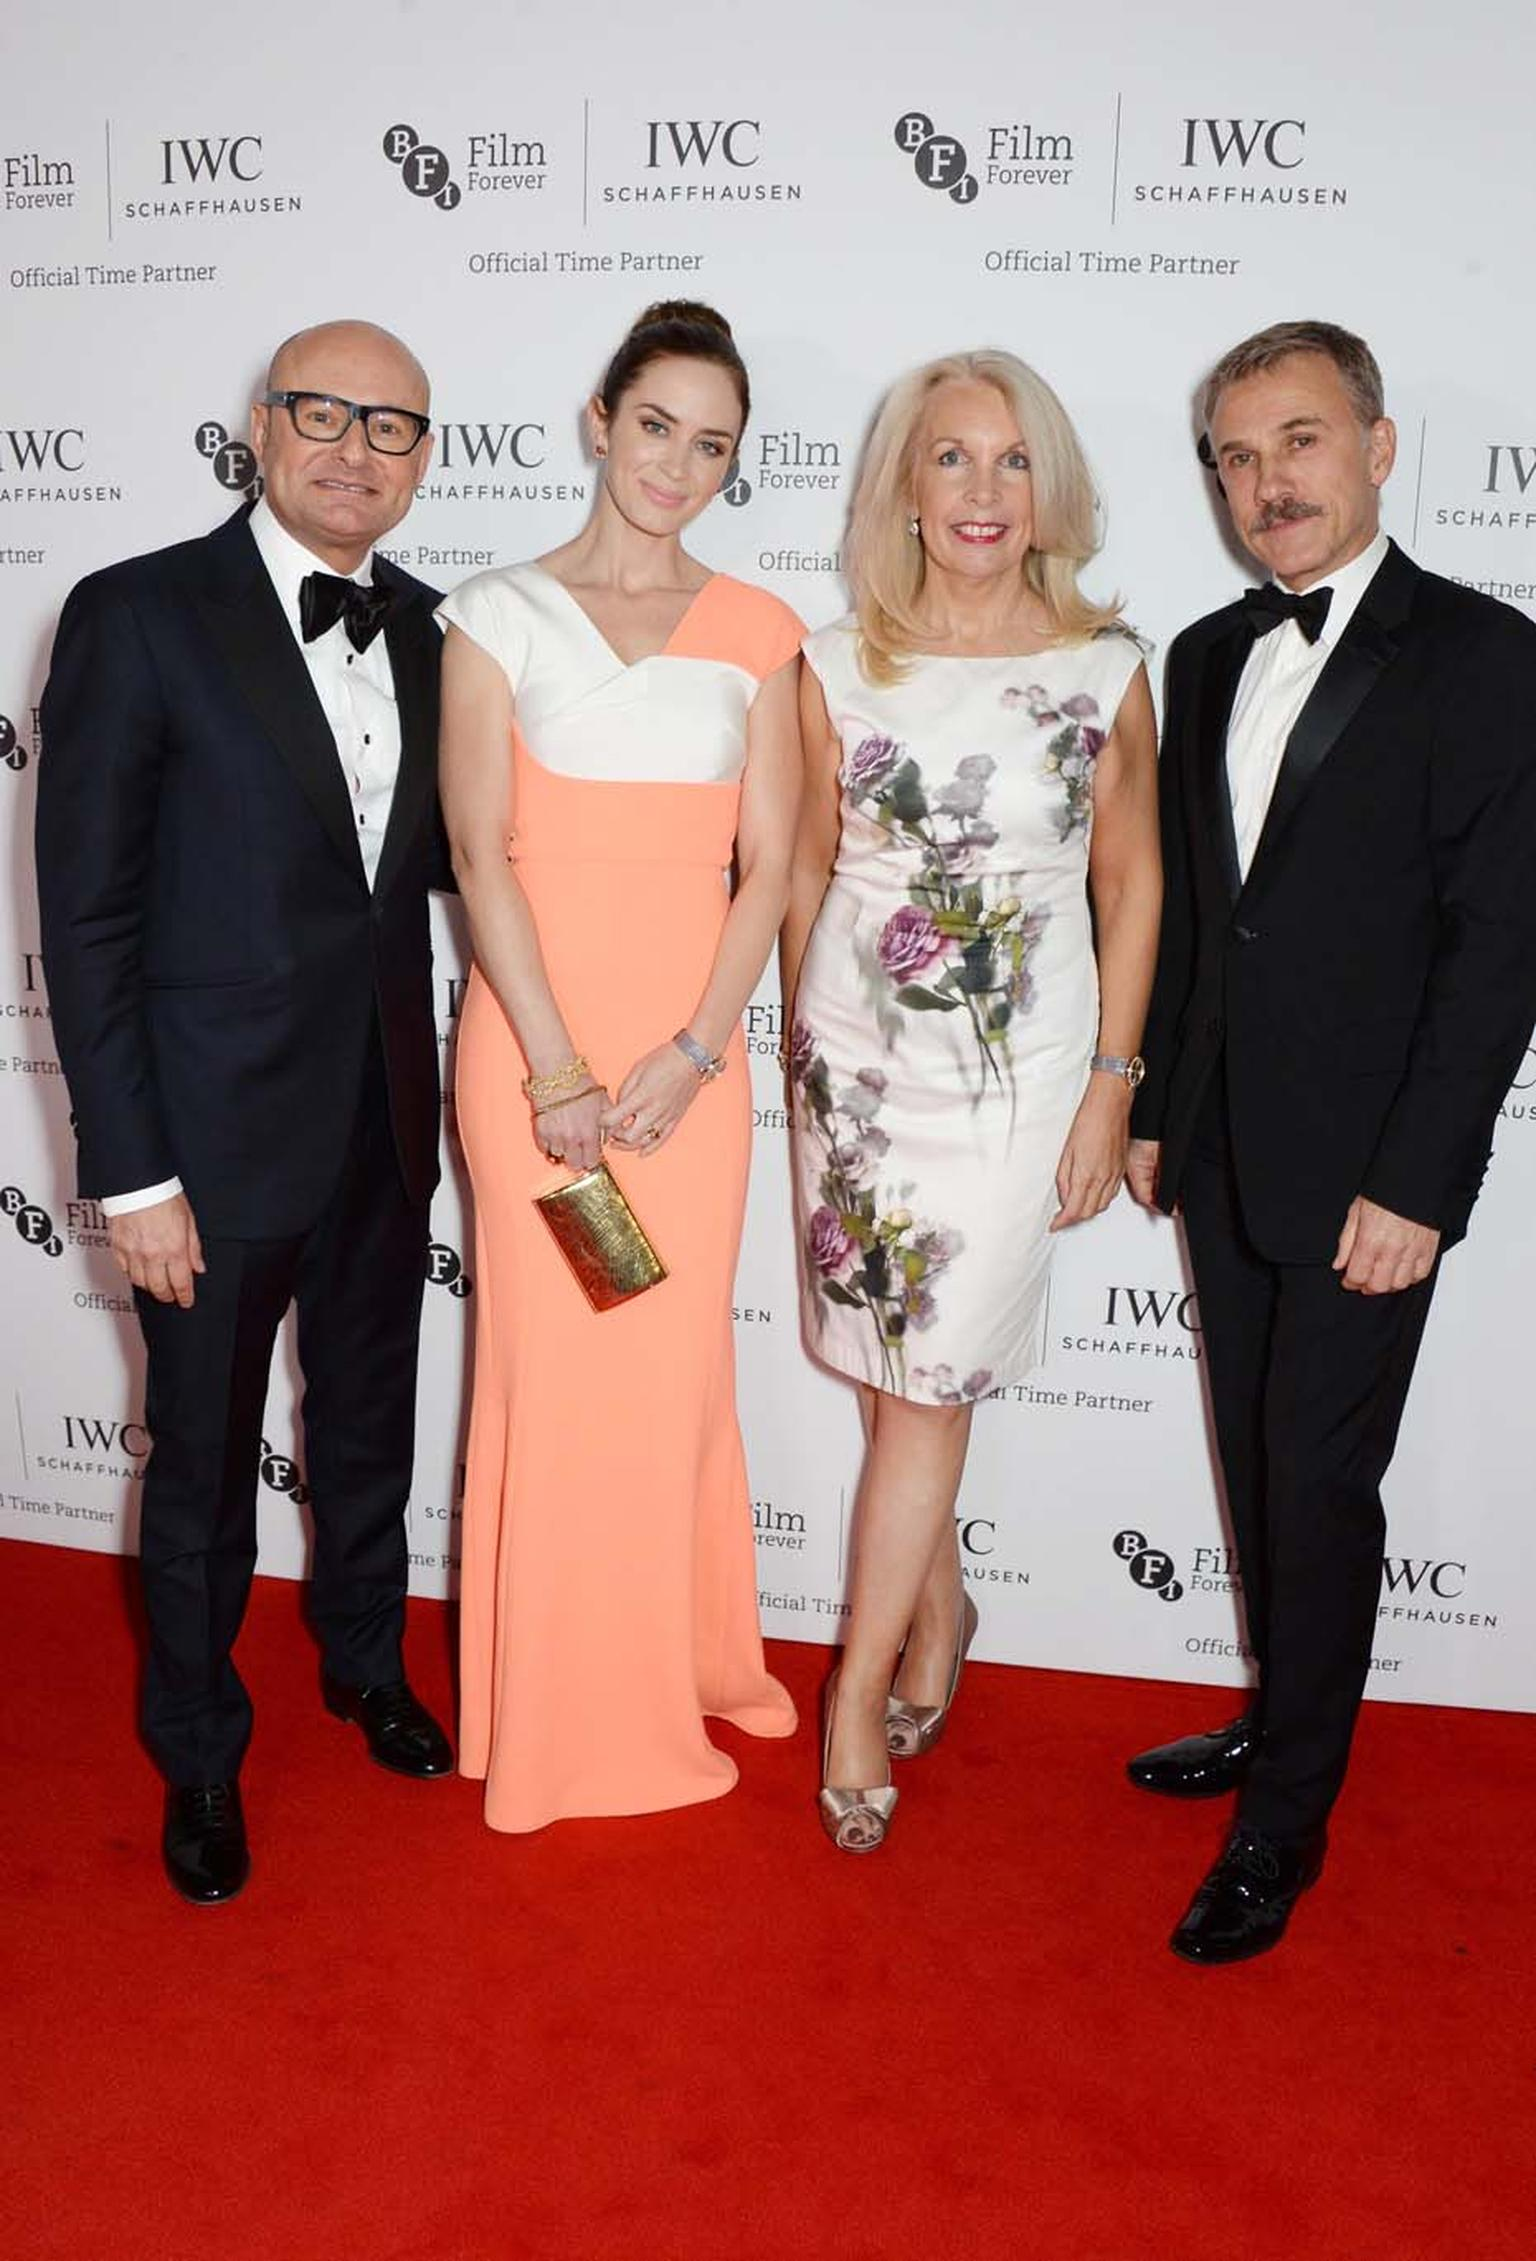 Georges Kern, CEO of IWC Schaffhausen, Emily Blunt, Amanda Nevill, CEO of the BFI, and Christoph Waltz attend the BFI London Film Festival IWC Gala Dinner in honour of the BFI at Battersea Evolution Marquee. Image by: Photopress/IWC